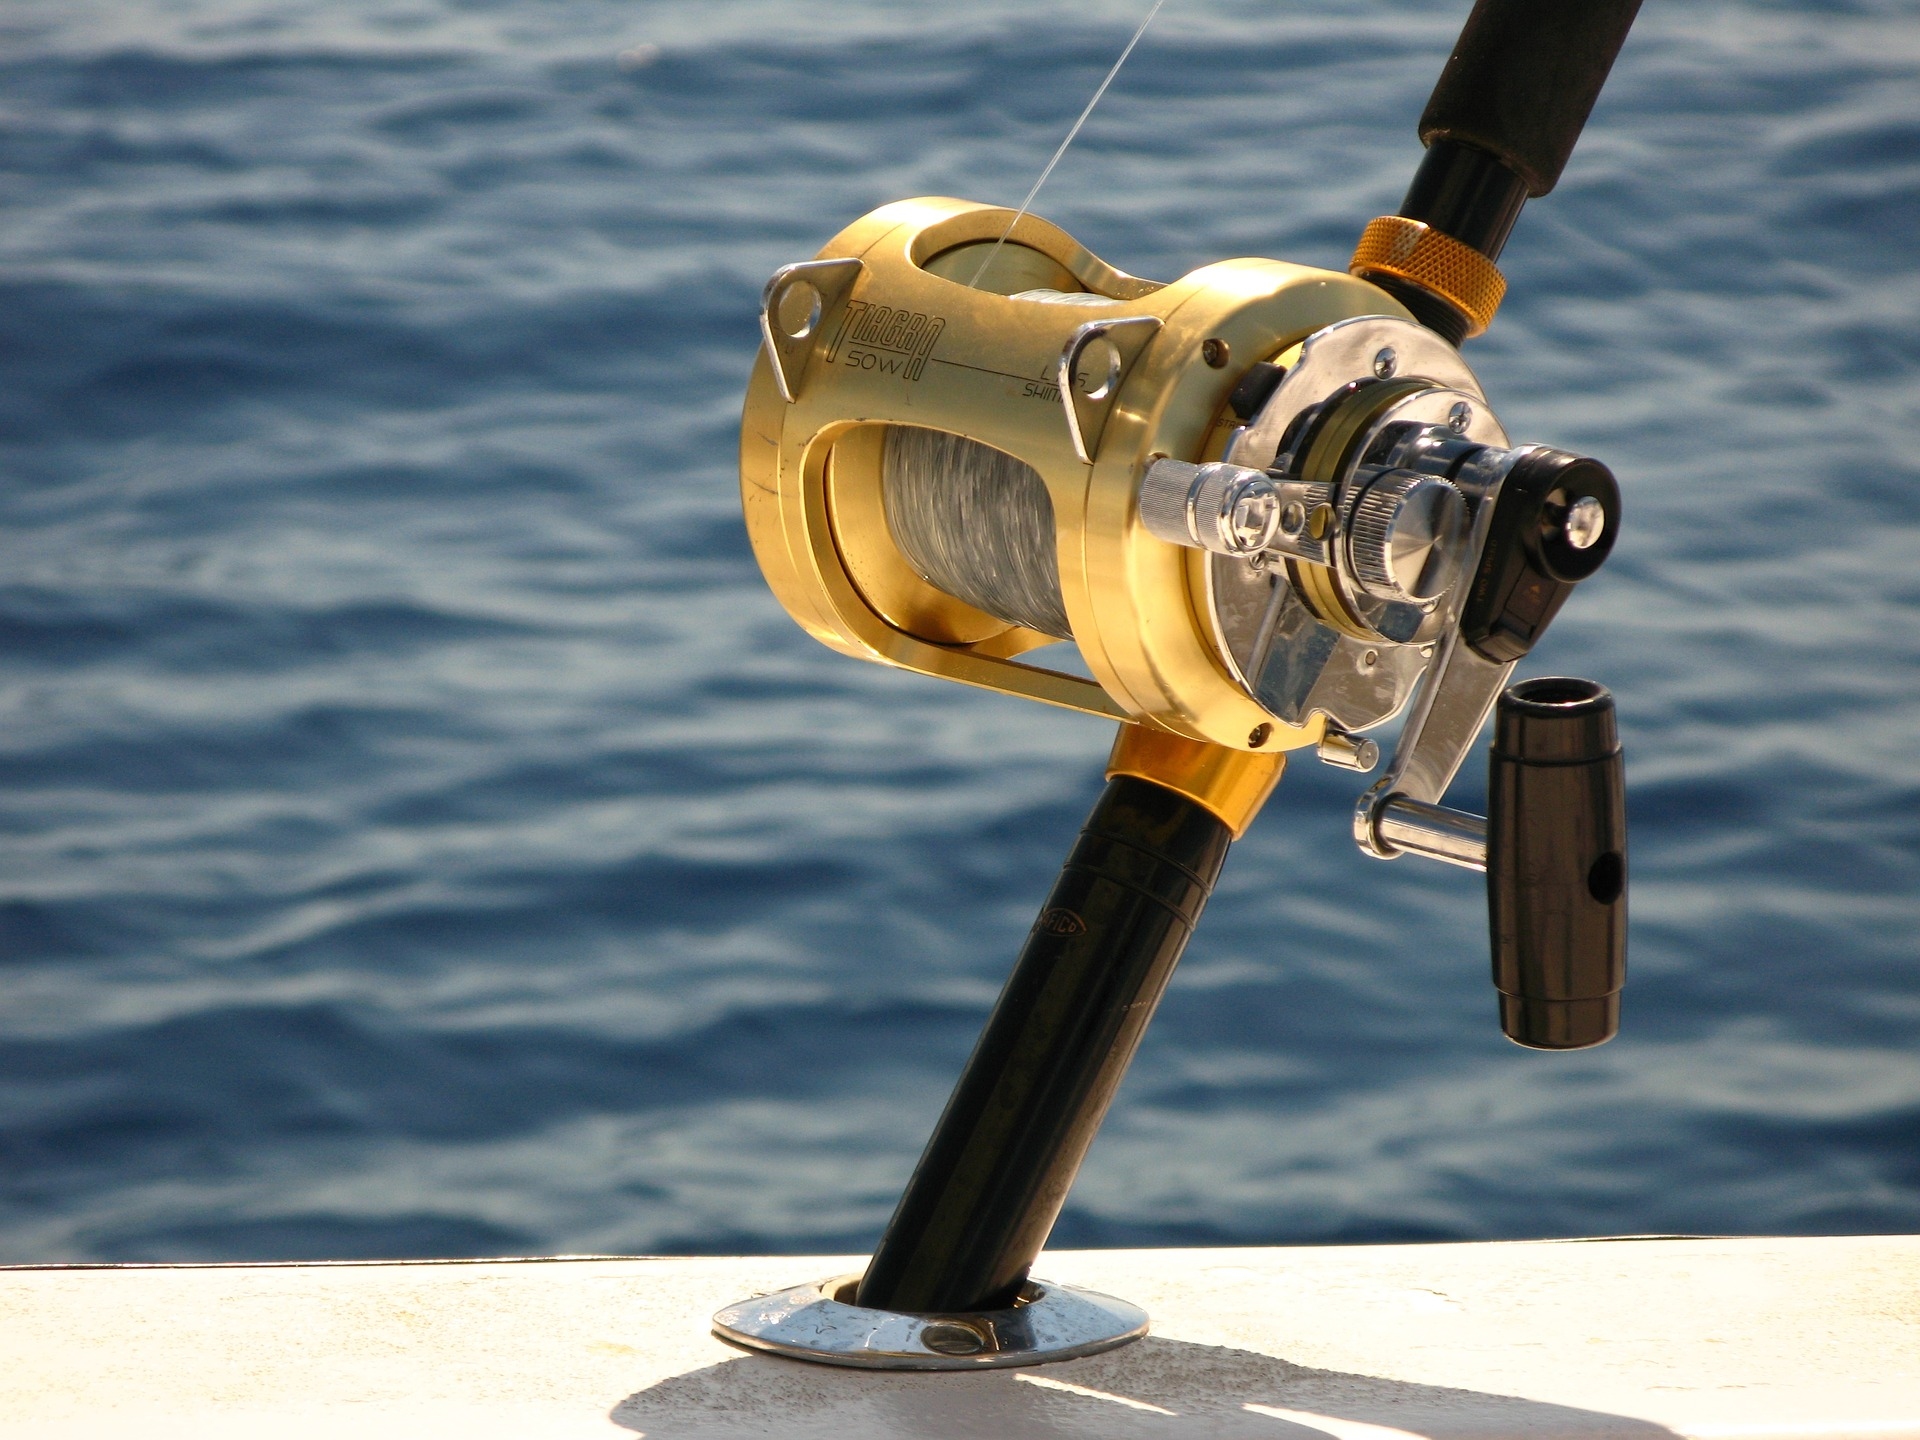 Best Deep Sea Fishing Around the World